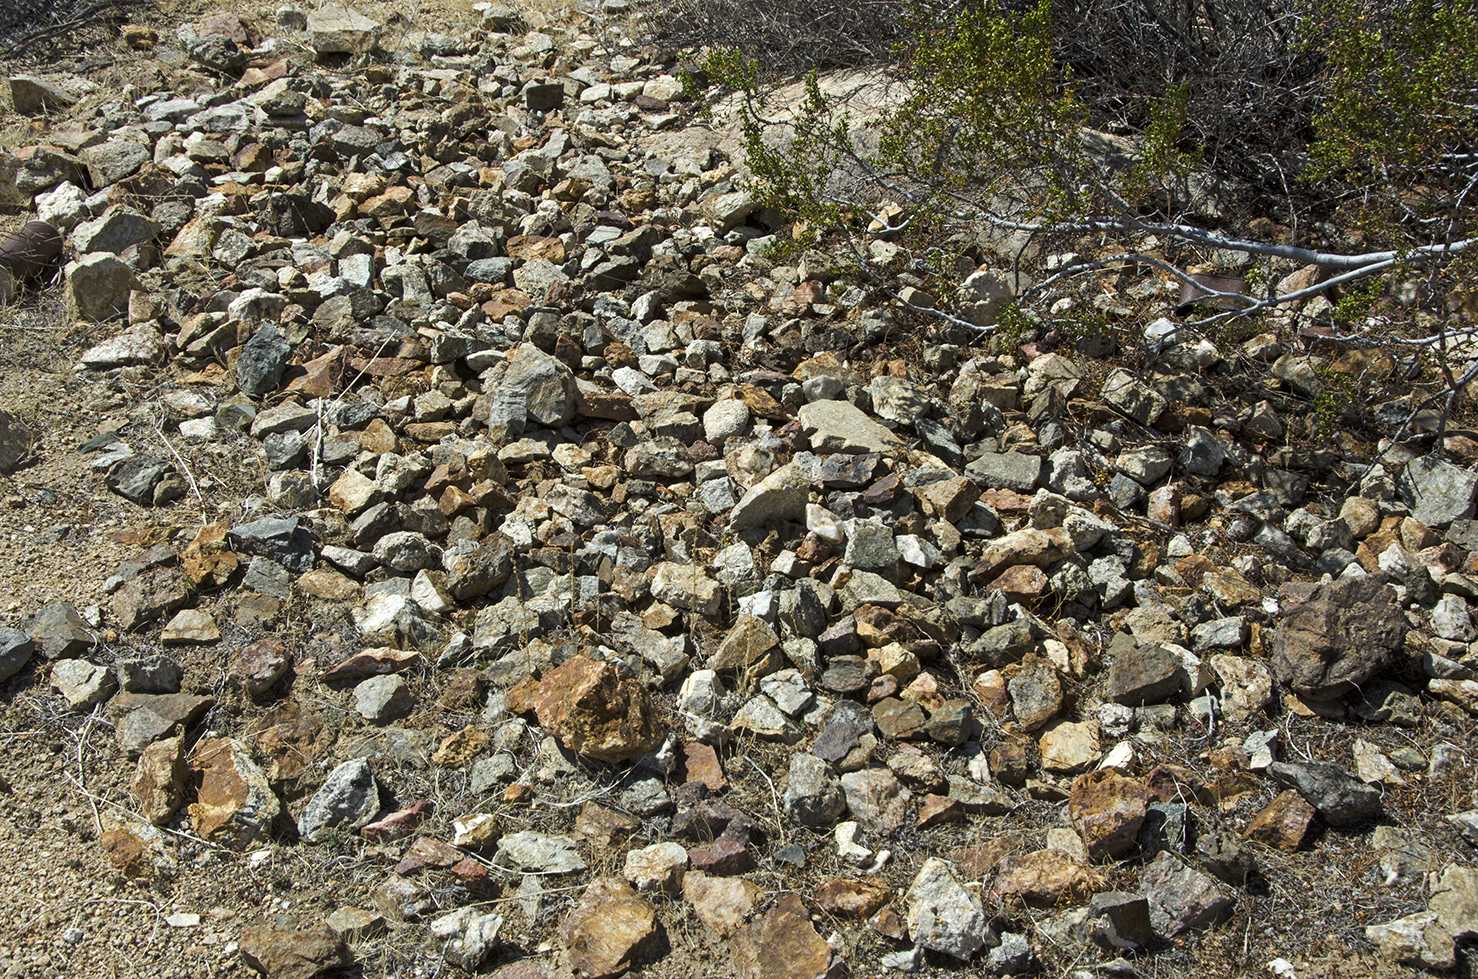 I couldn't figure out why all these broken rocks were in this spot.